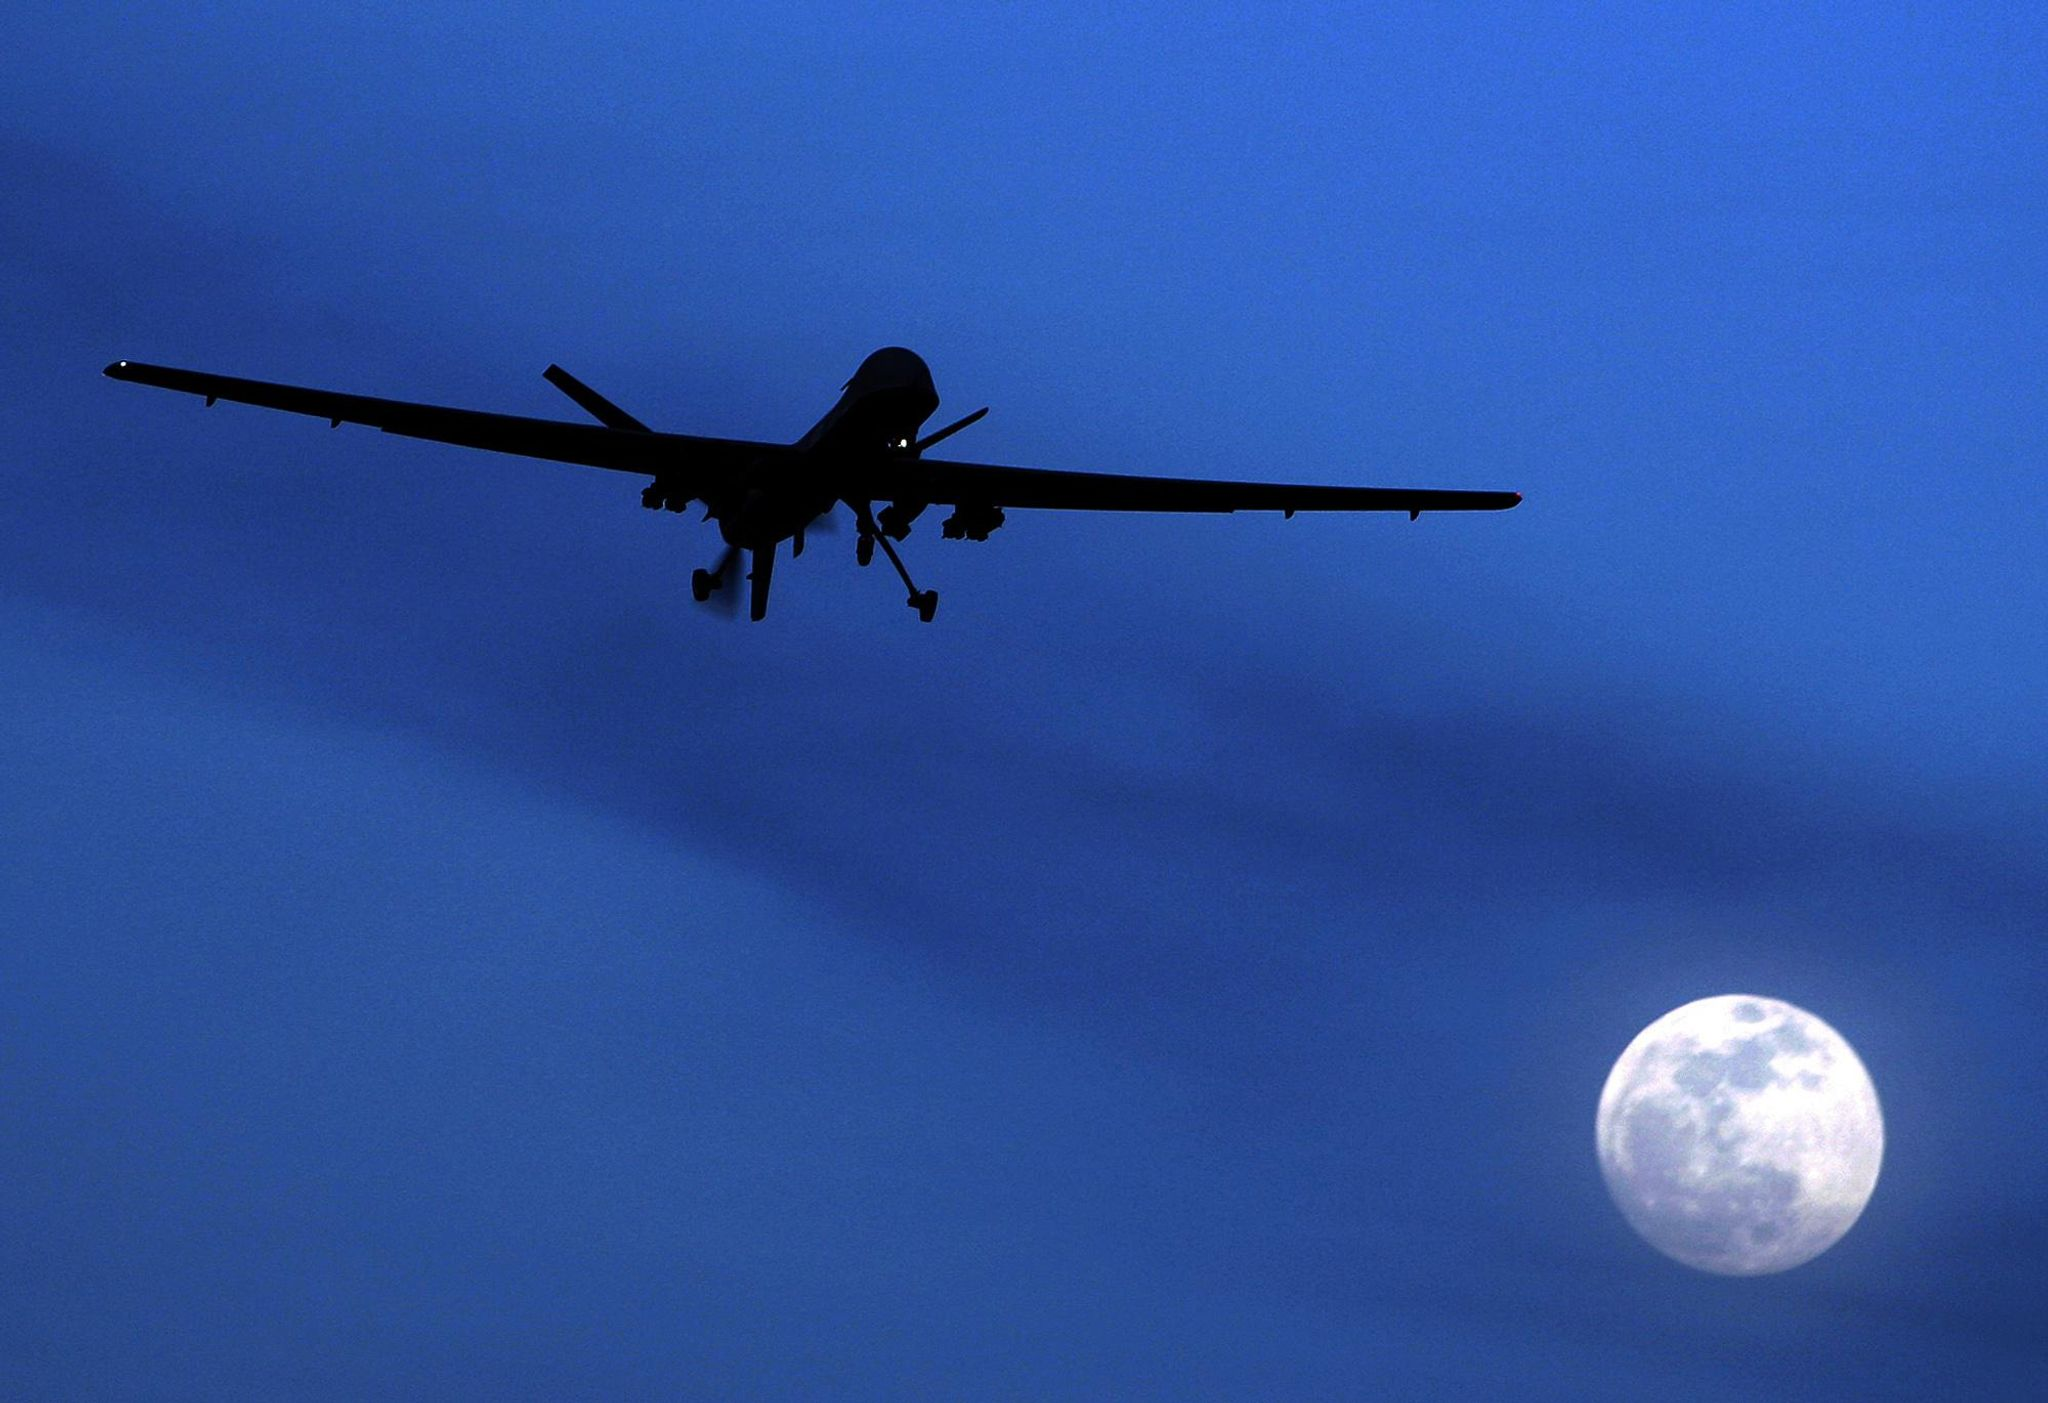 Obama-led drone strikes kill innocents 90% of the time: report